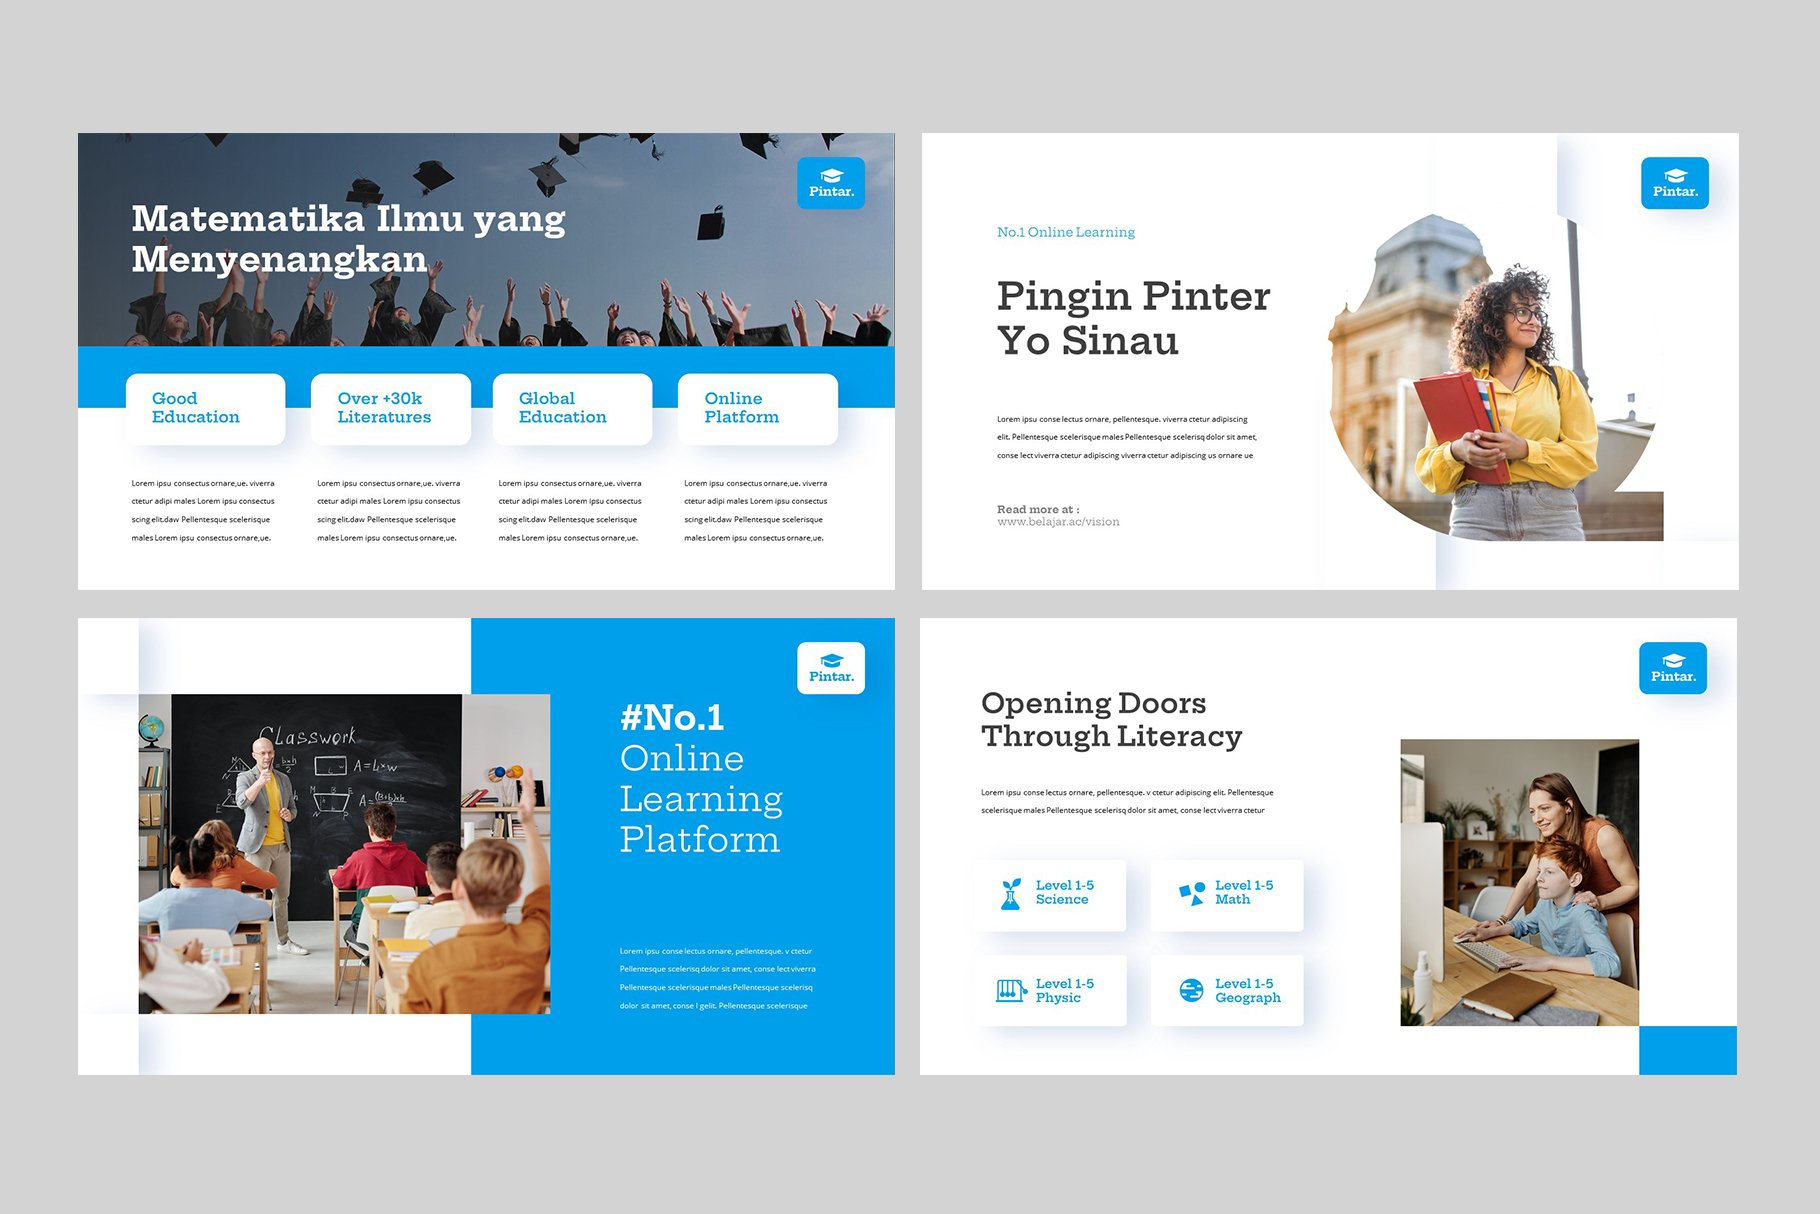 Vivid images and text blocks will help you to convey information in the simplest way.